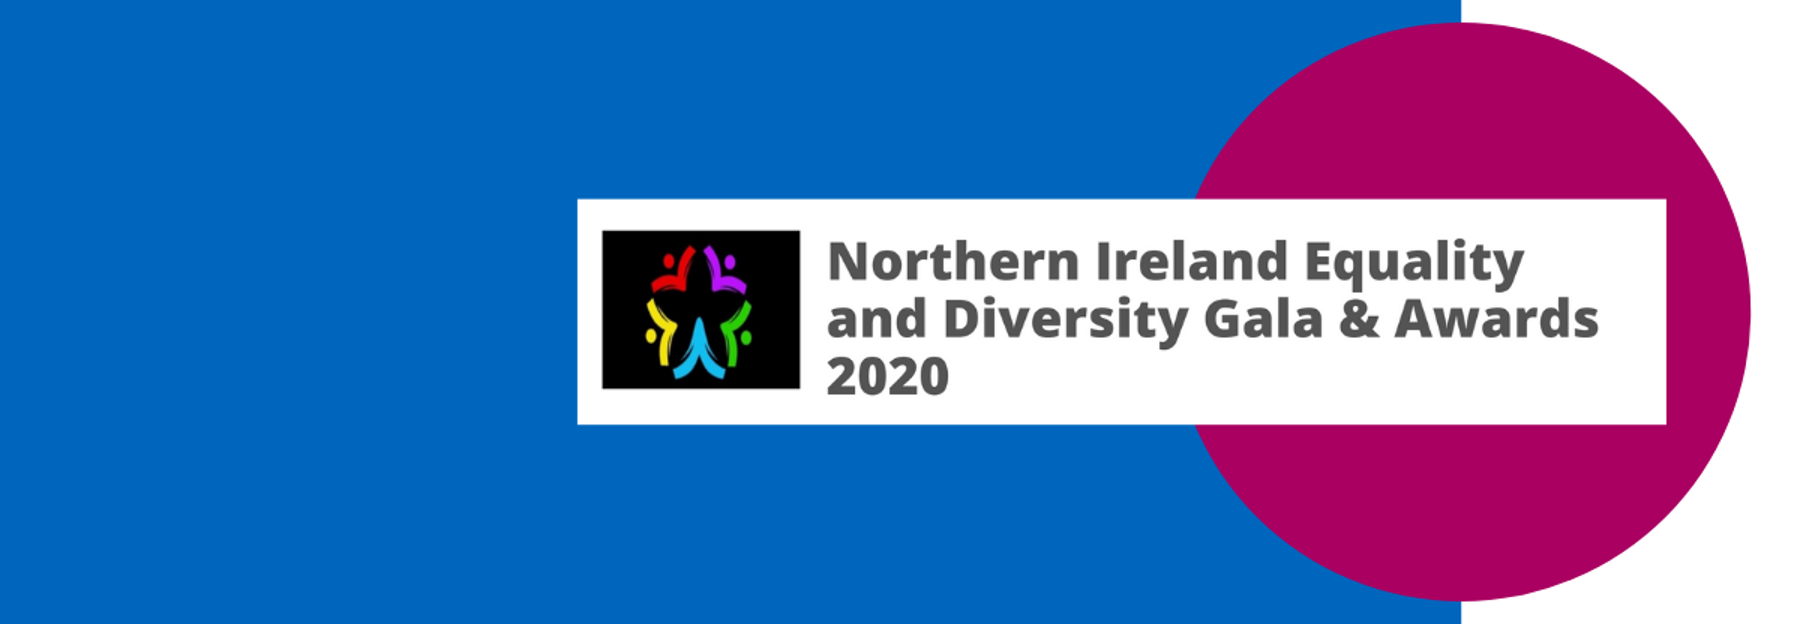 The Northern Ireland Equality & Diversity Gala & Awards 2020 online!